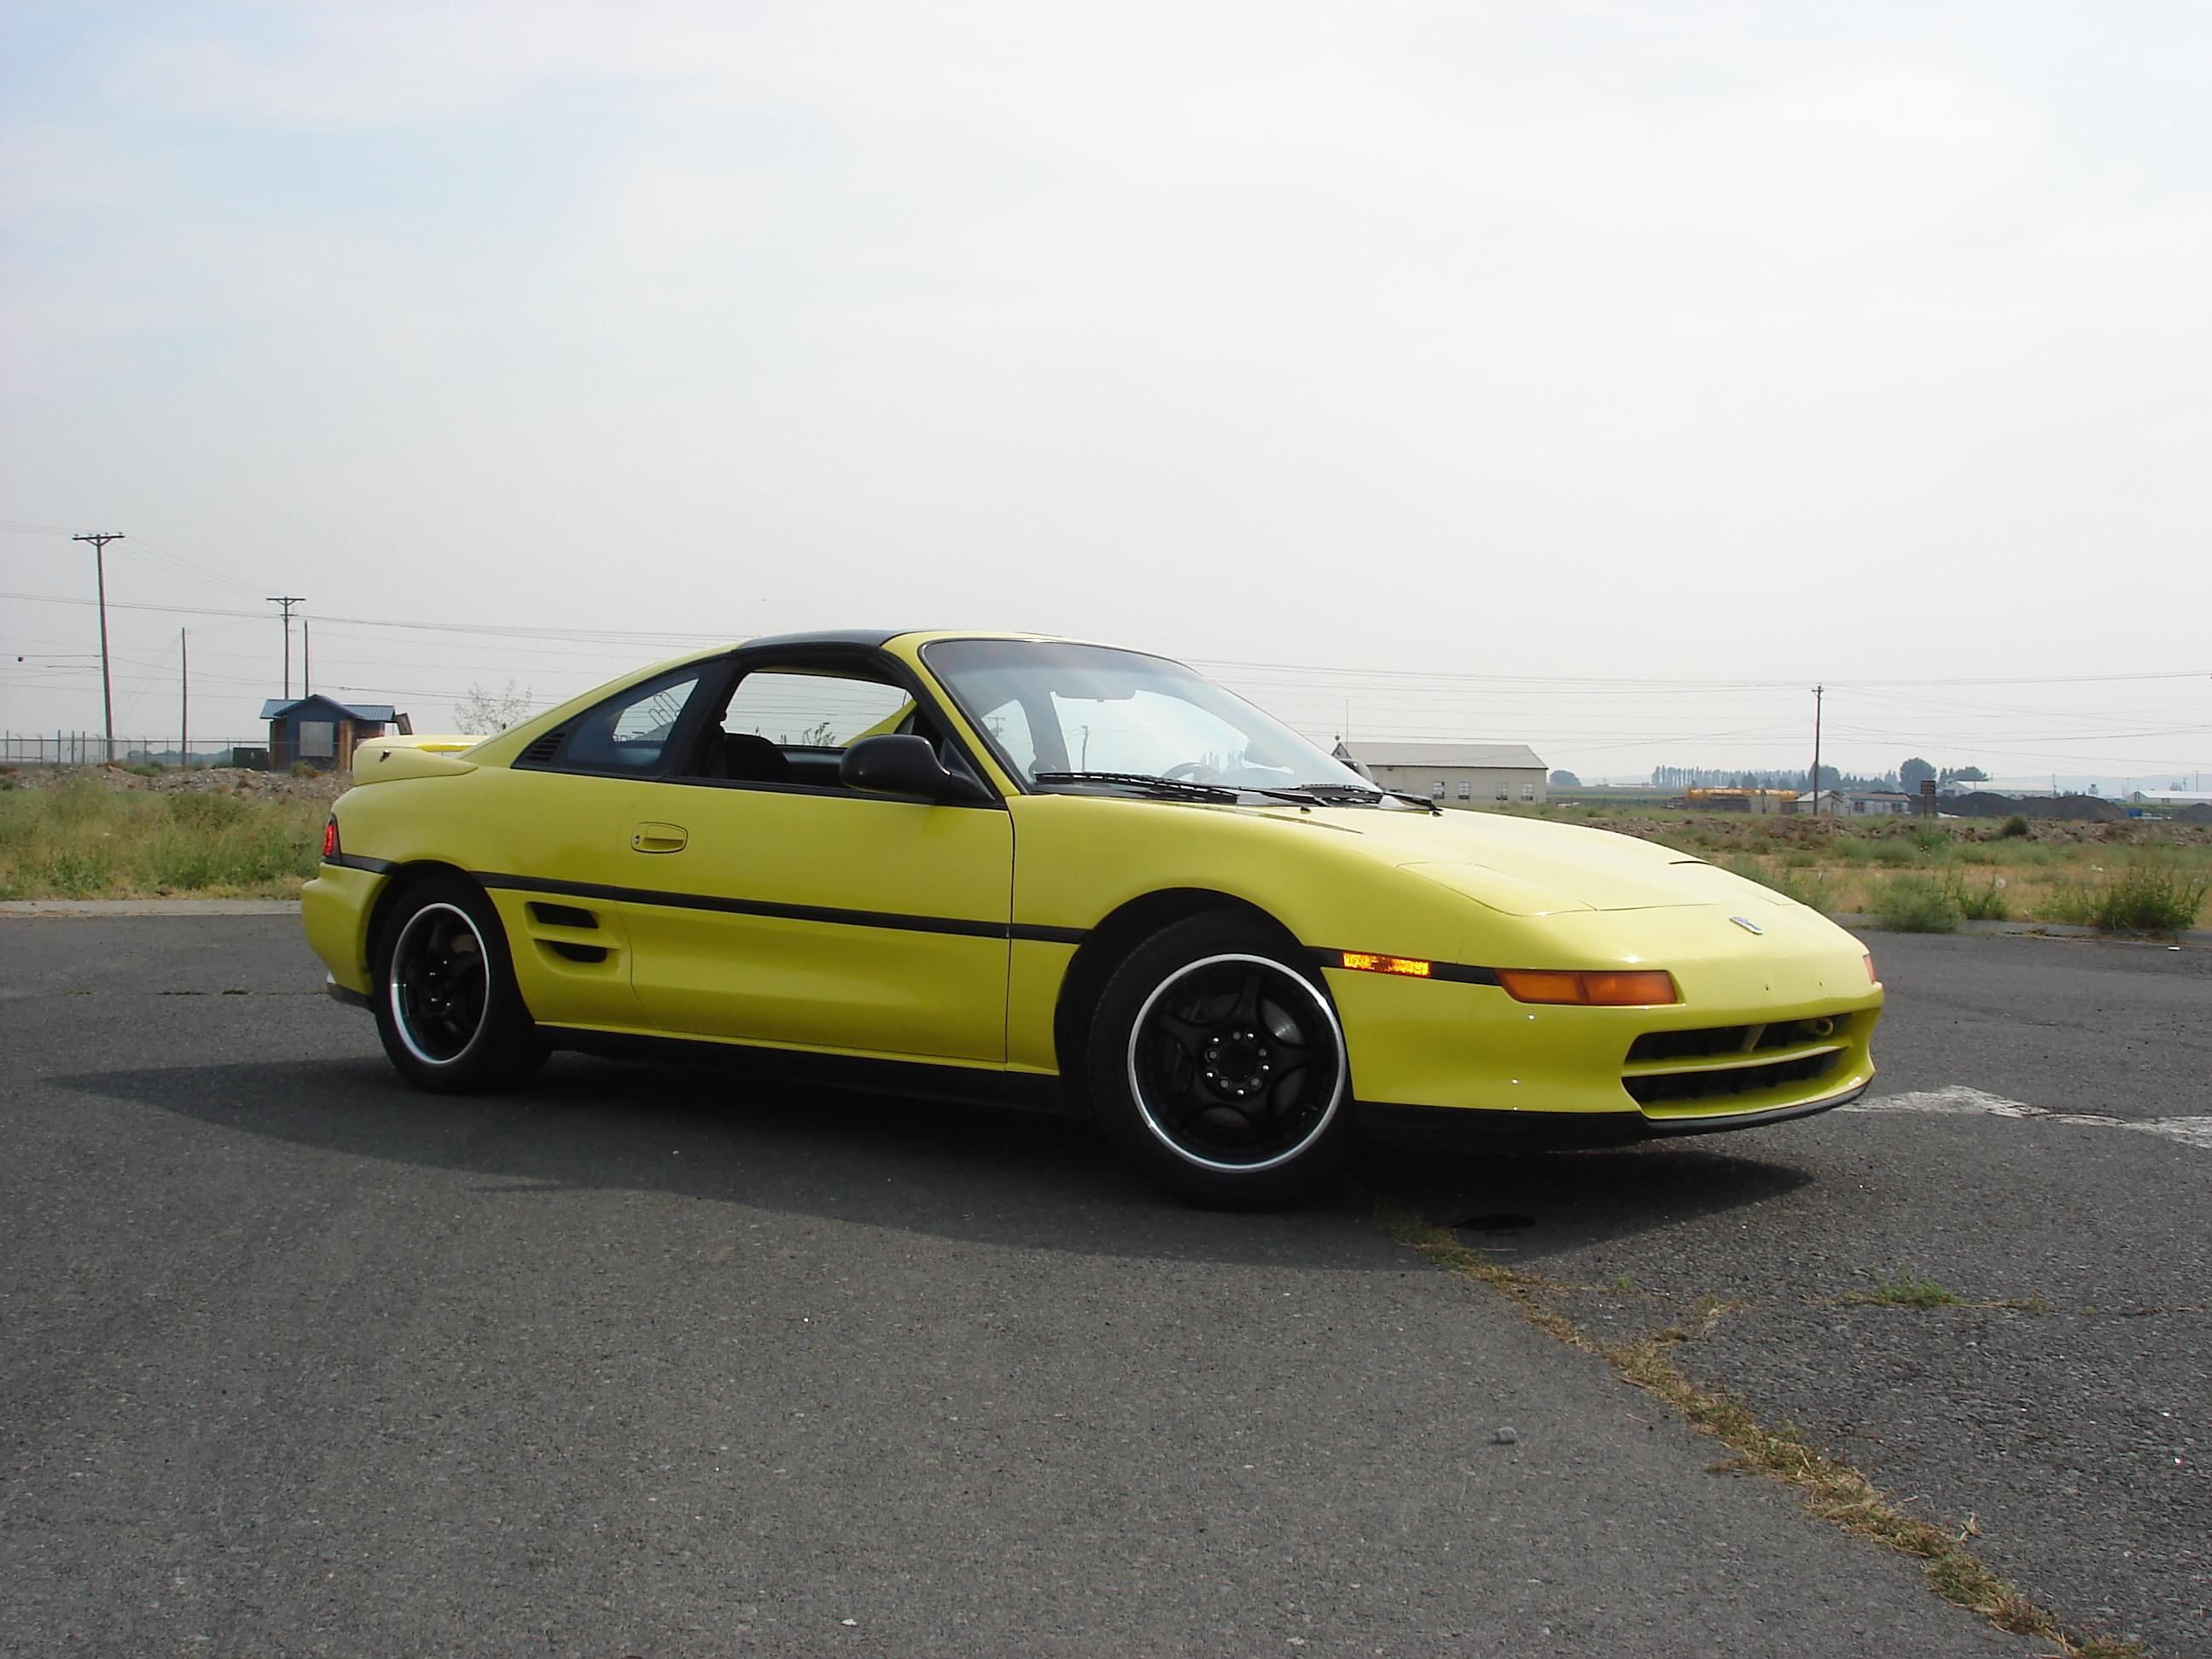 YELOW_MR2 1991 Toyota MR2 11473019